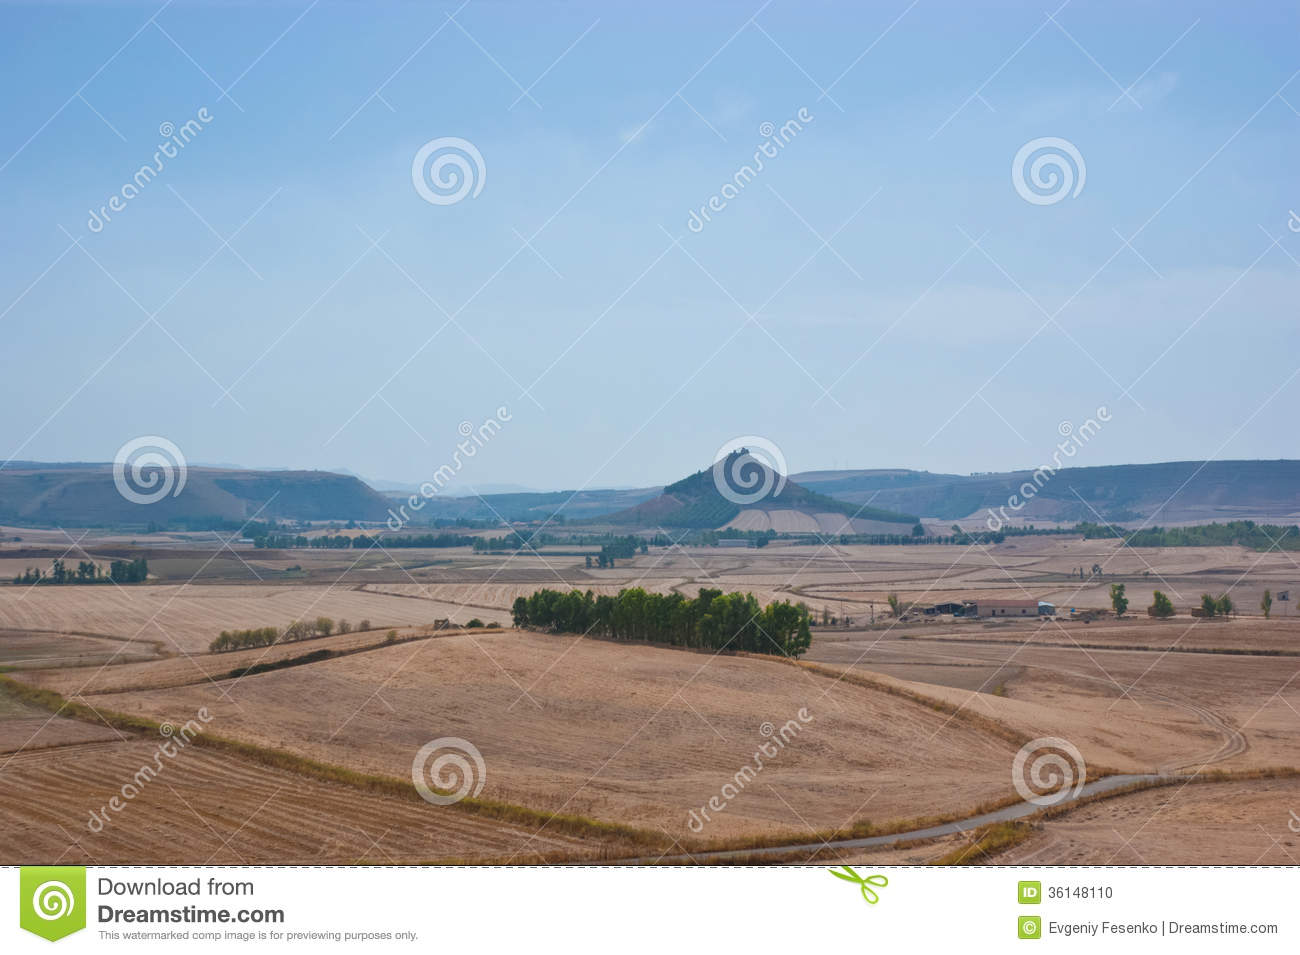 Sardinian Rural Landscape Stock Photo  Image 36148110